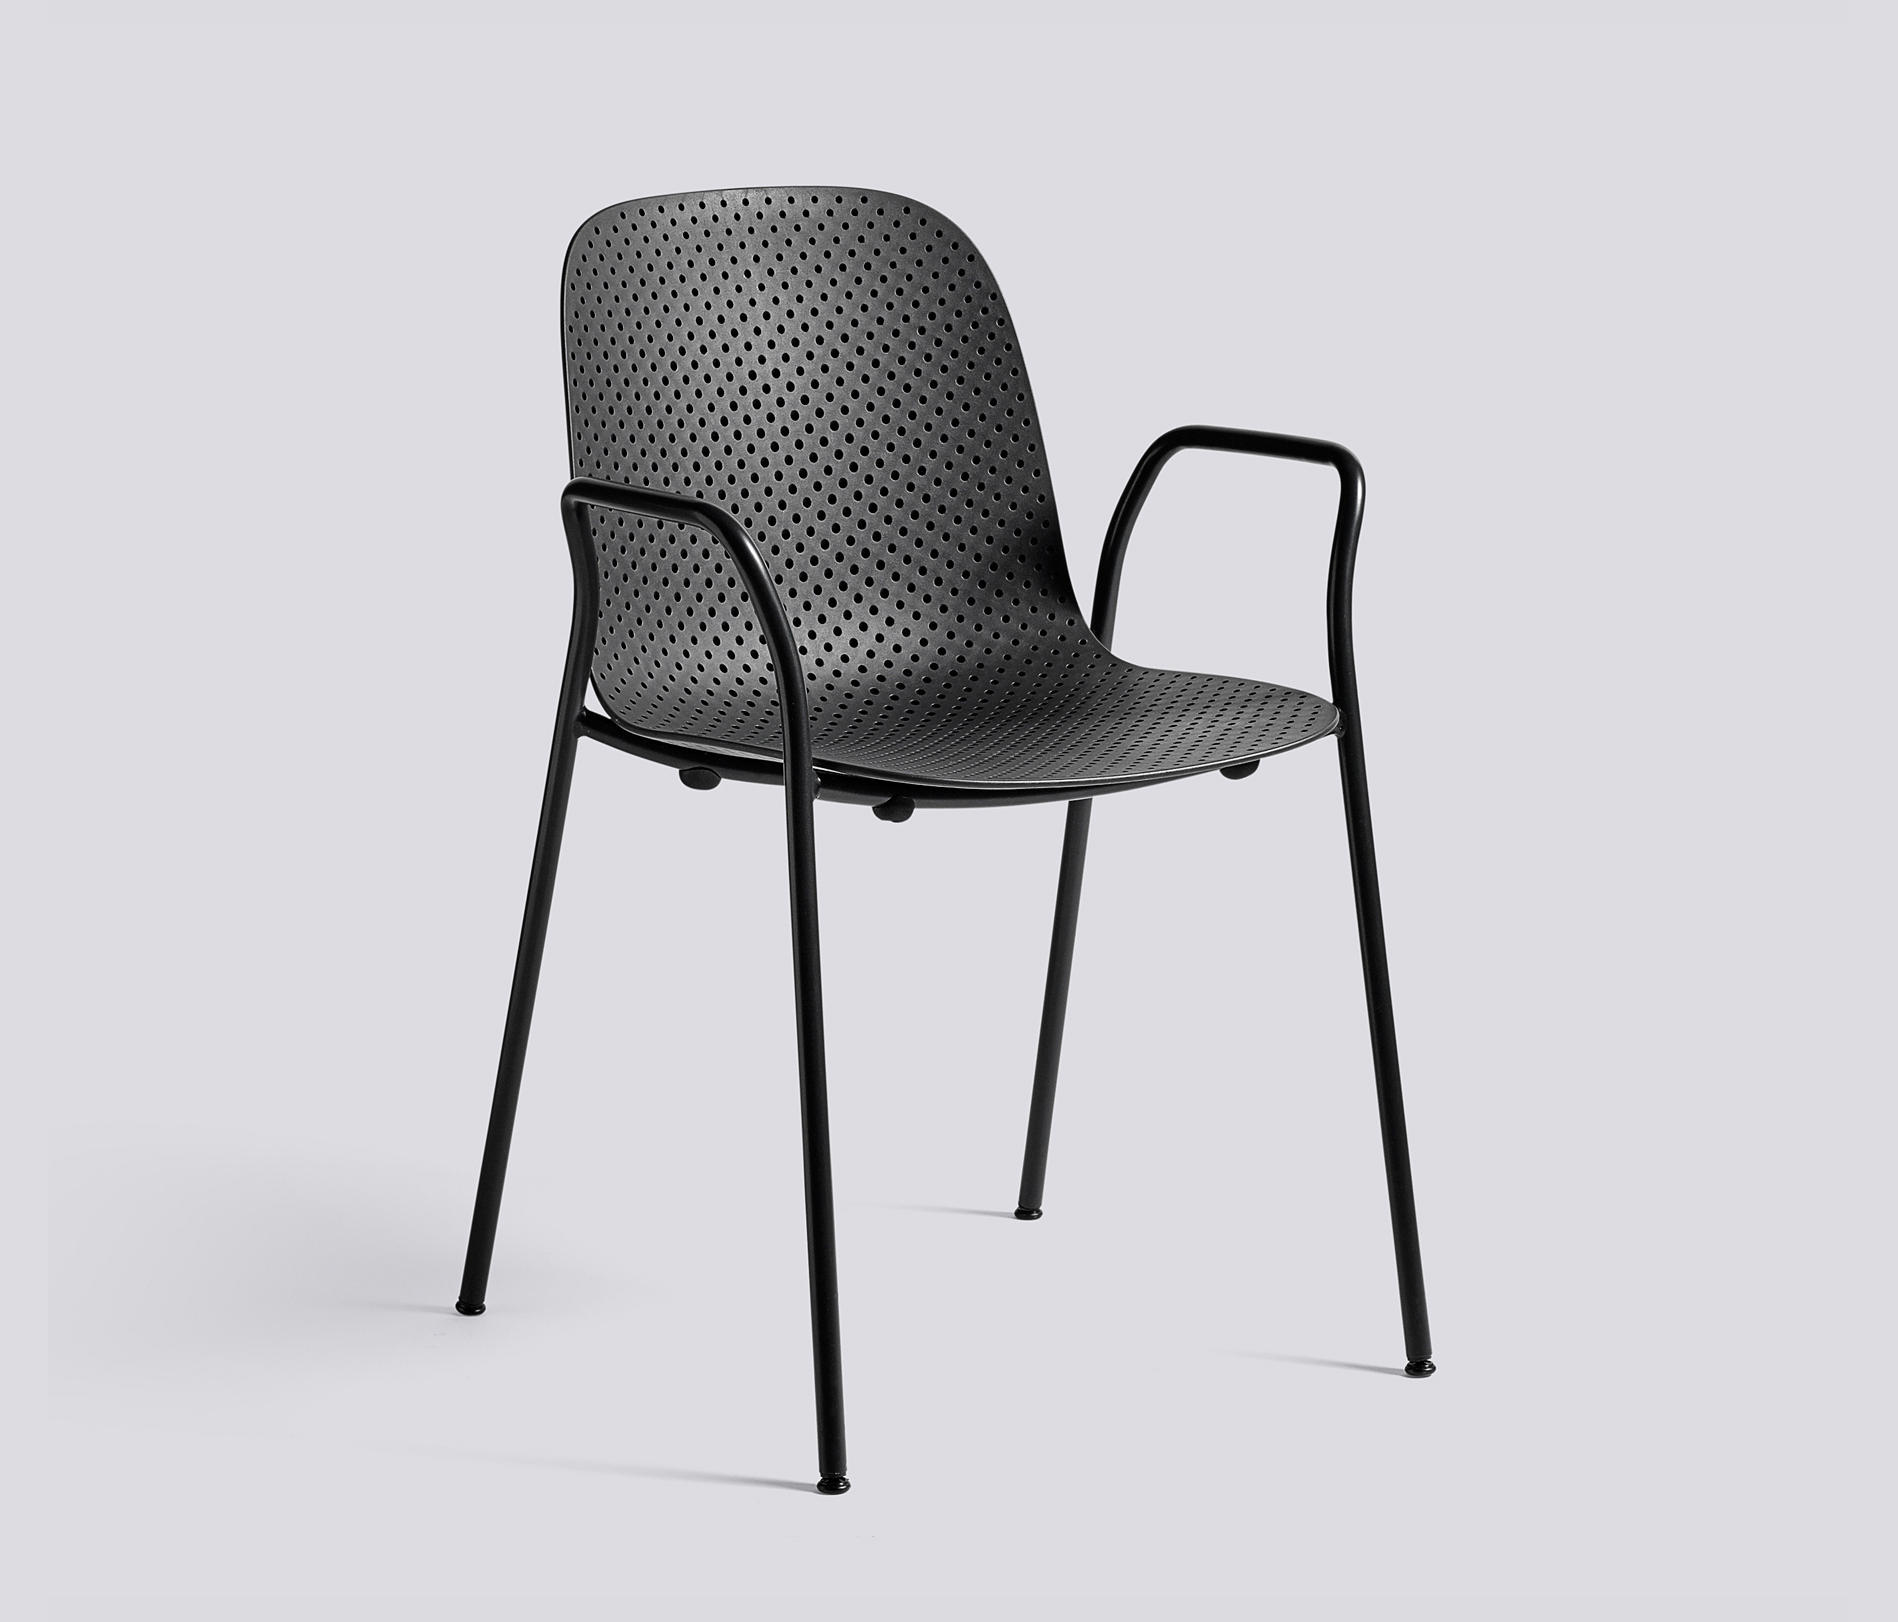 13eighty steel frame canteen chairs from hay architonic. Black Bedroom Furniture Sets. Home Design Ideas